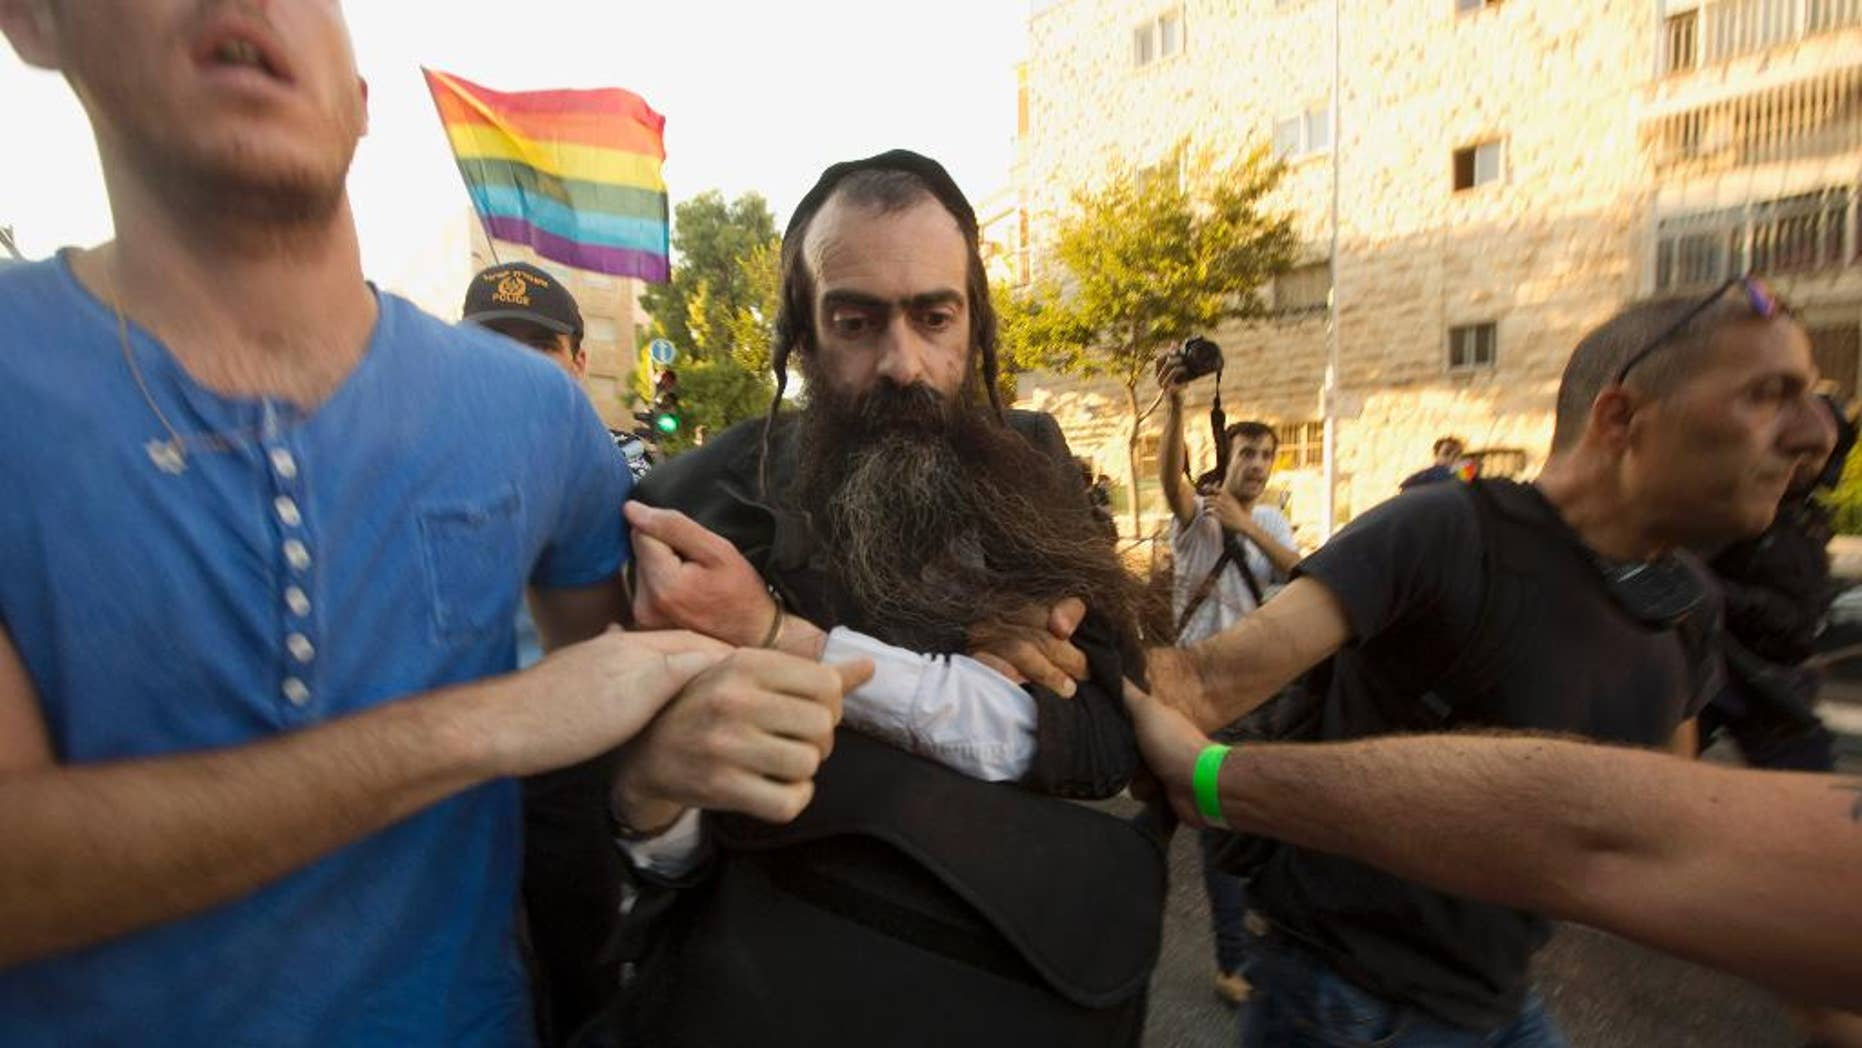 FILE - In this Thursday, July 30, 2015 file photo, ultra-Orthodox Jew Yishai Schlissel is detained by plain-clothes police officers after he stabbed people during a gay pride parade in Jerusalem. An Israeli hospital spokeswoman said Sunday, Aug. 2, that a teenage girl stabbed by Schlissel, an anti-gay extremist, in Thursday's attack during the parade has died. (AP Photo/Sebastian Scheiner, File)